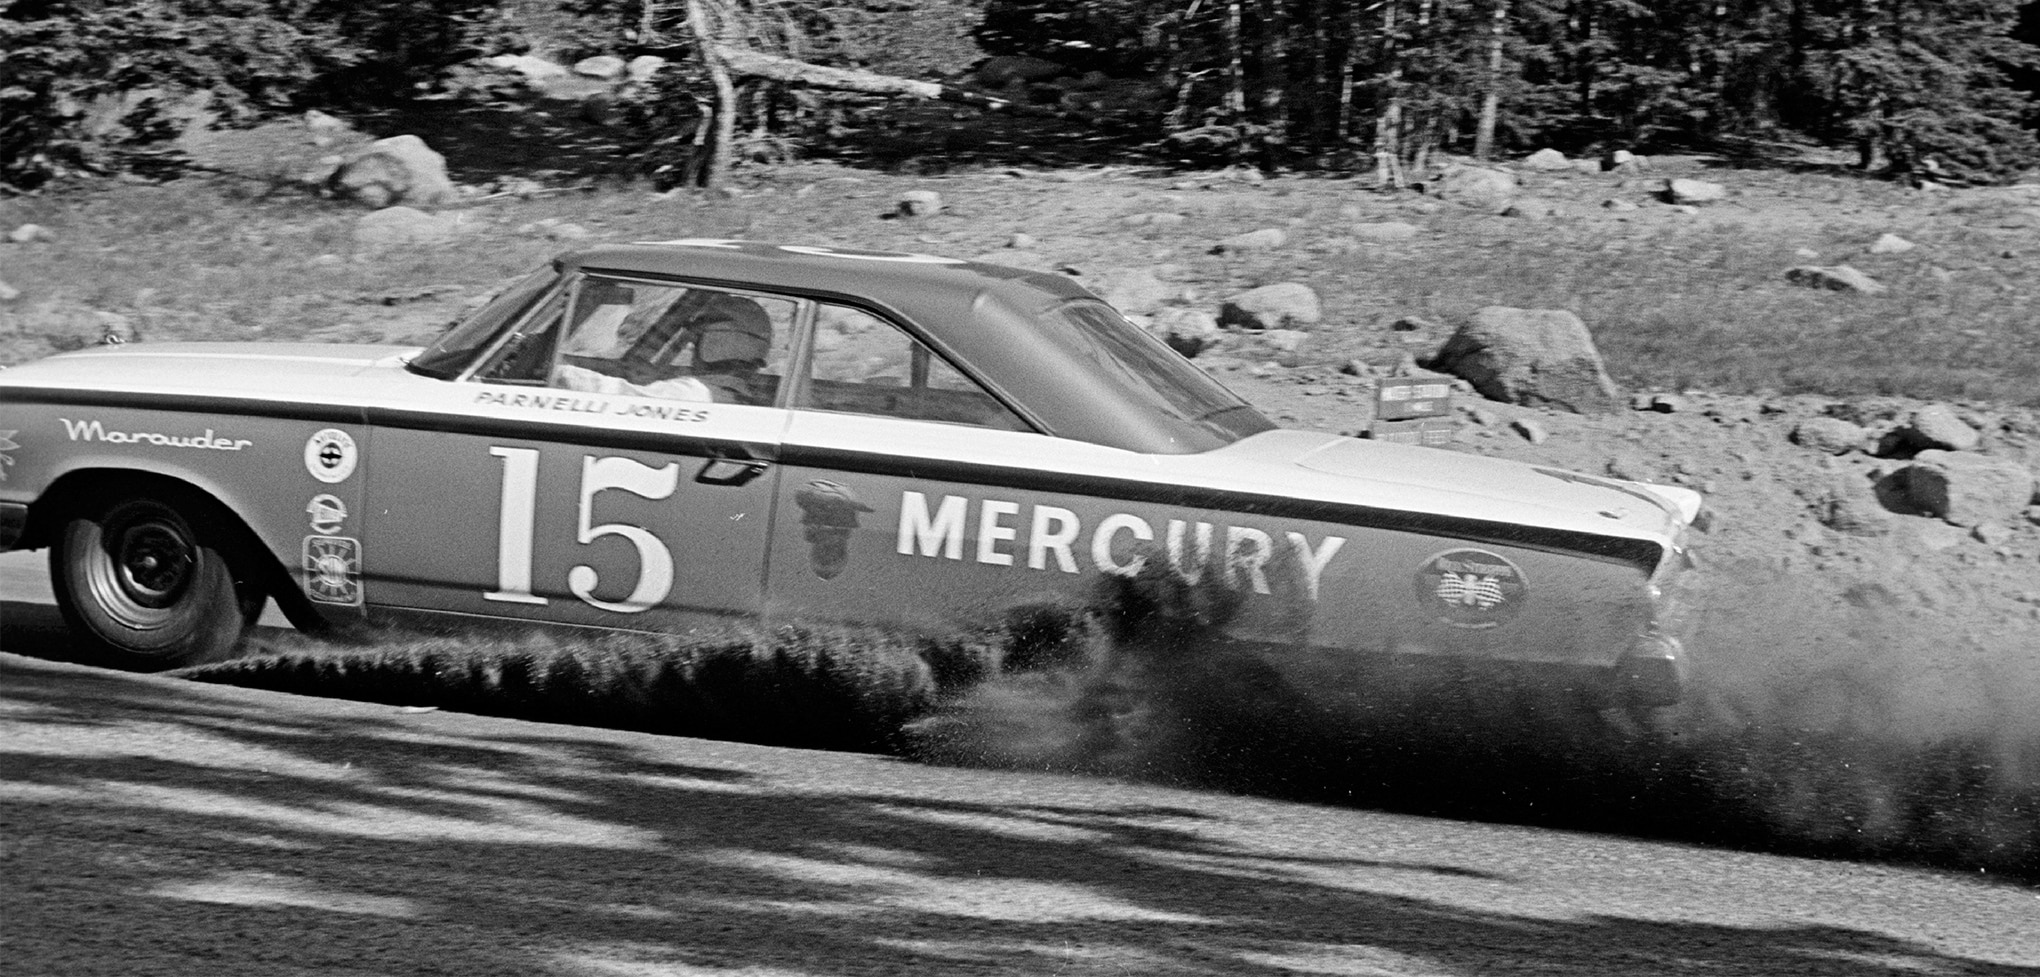 For the second straight year, Parnelli Jones topped the Stock Car category in a Mercury Marauder. His record-setting time of 13:52.2 was the first under 14 minutes for a stocker on the 12.42-mile, all-dirt course.